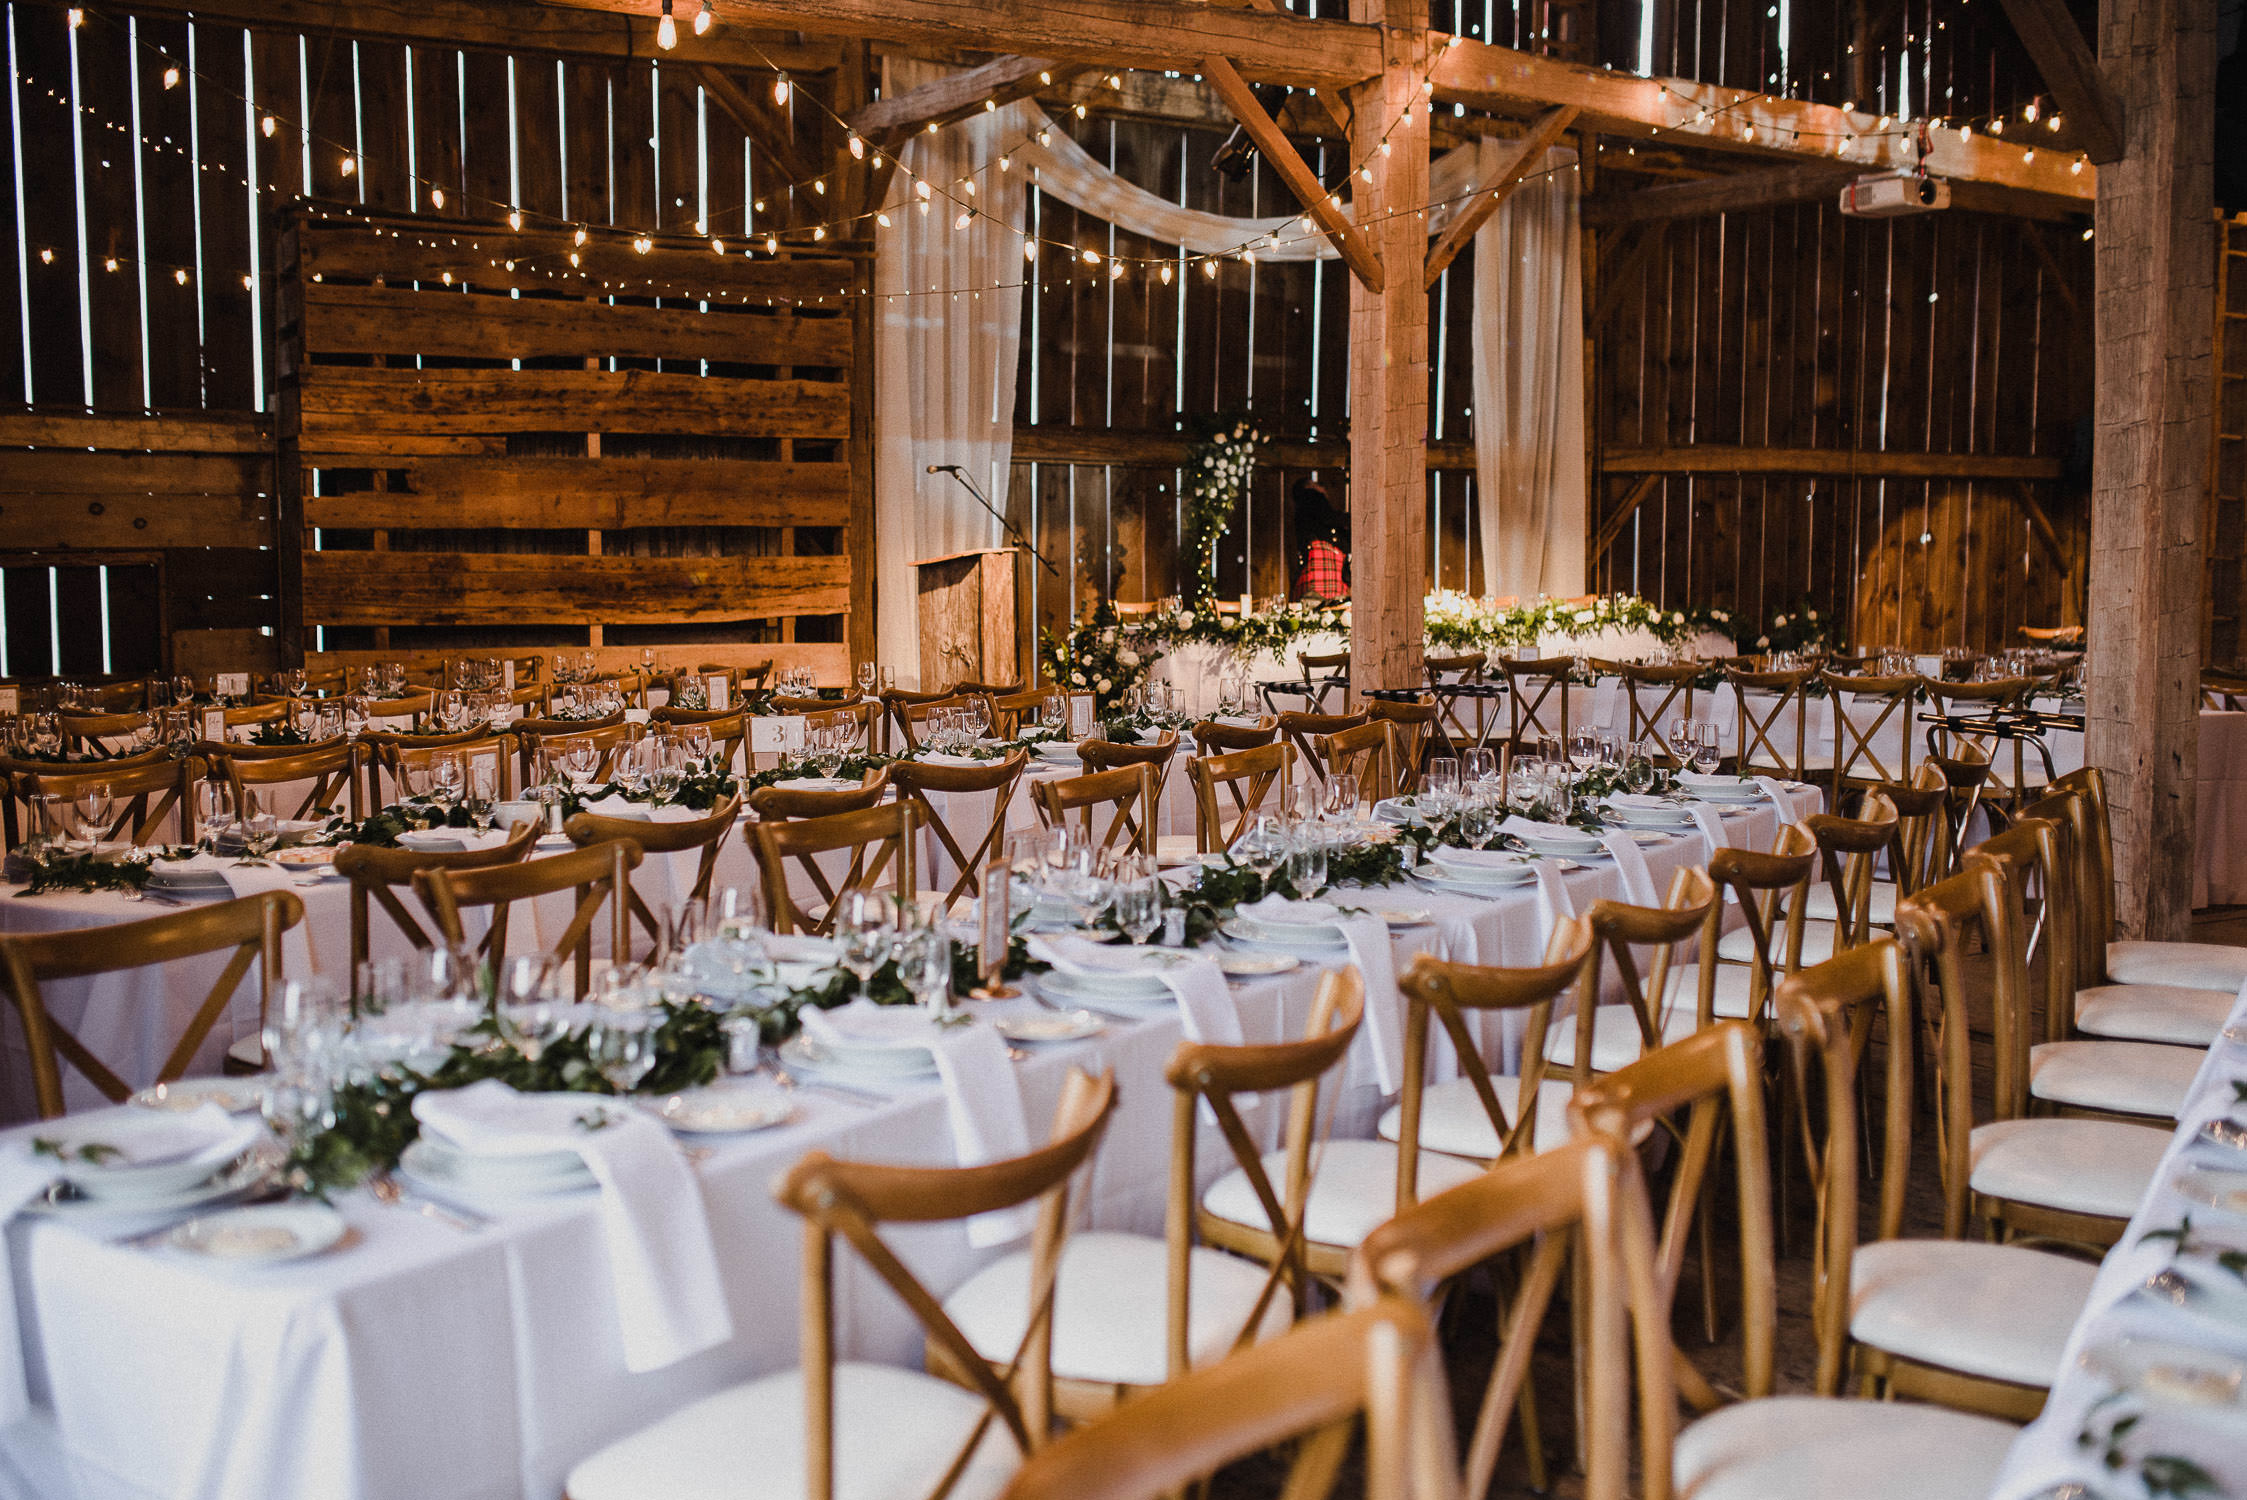 Reception hall in the barn at Cambium Farm.